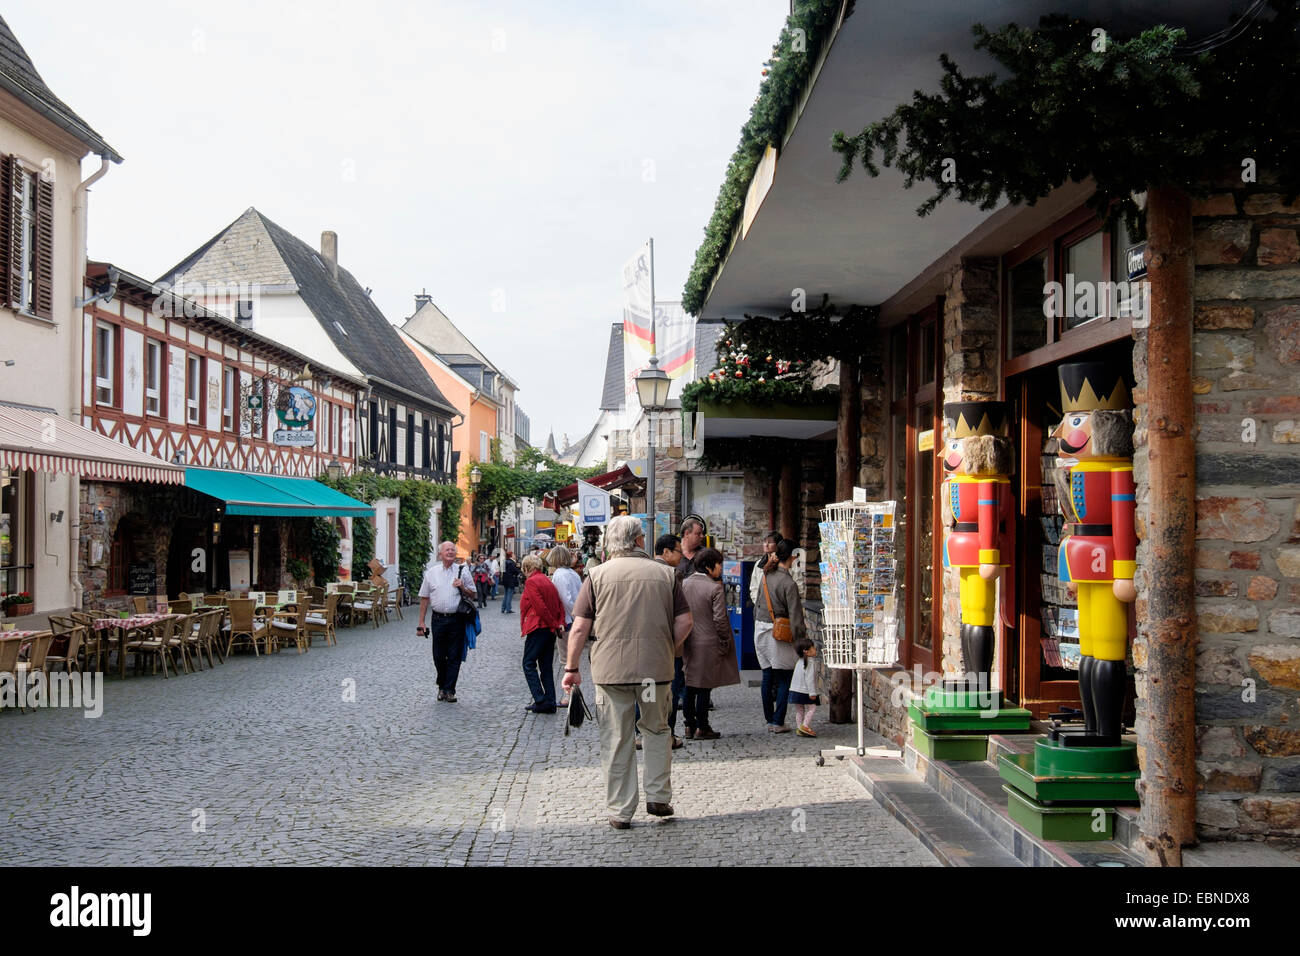 Tourists and shops in old town street Oberstrasse, Rüdesheim am Rhein, Hesse, Germany, Europe - Stock Image